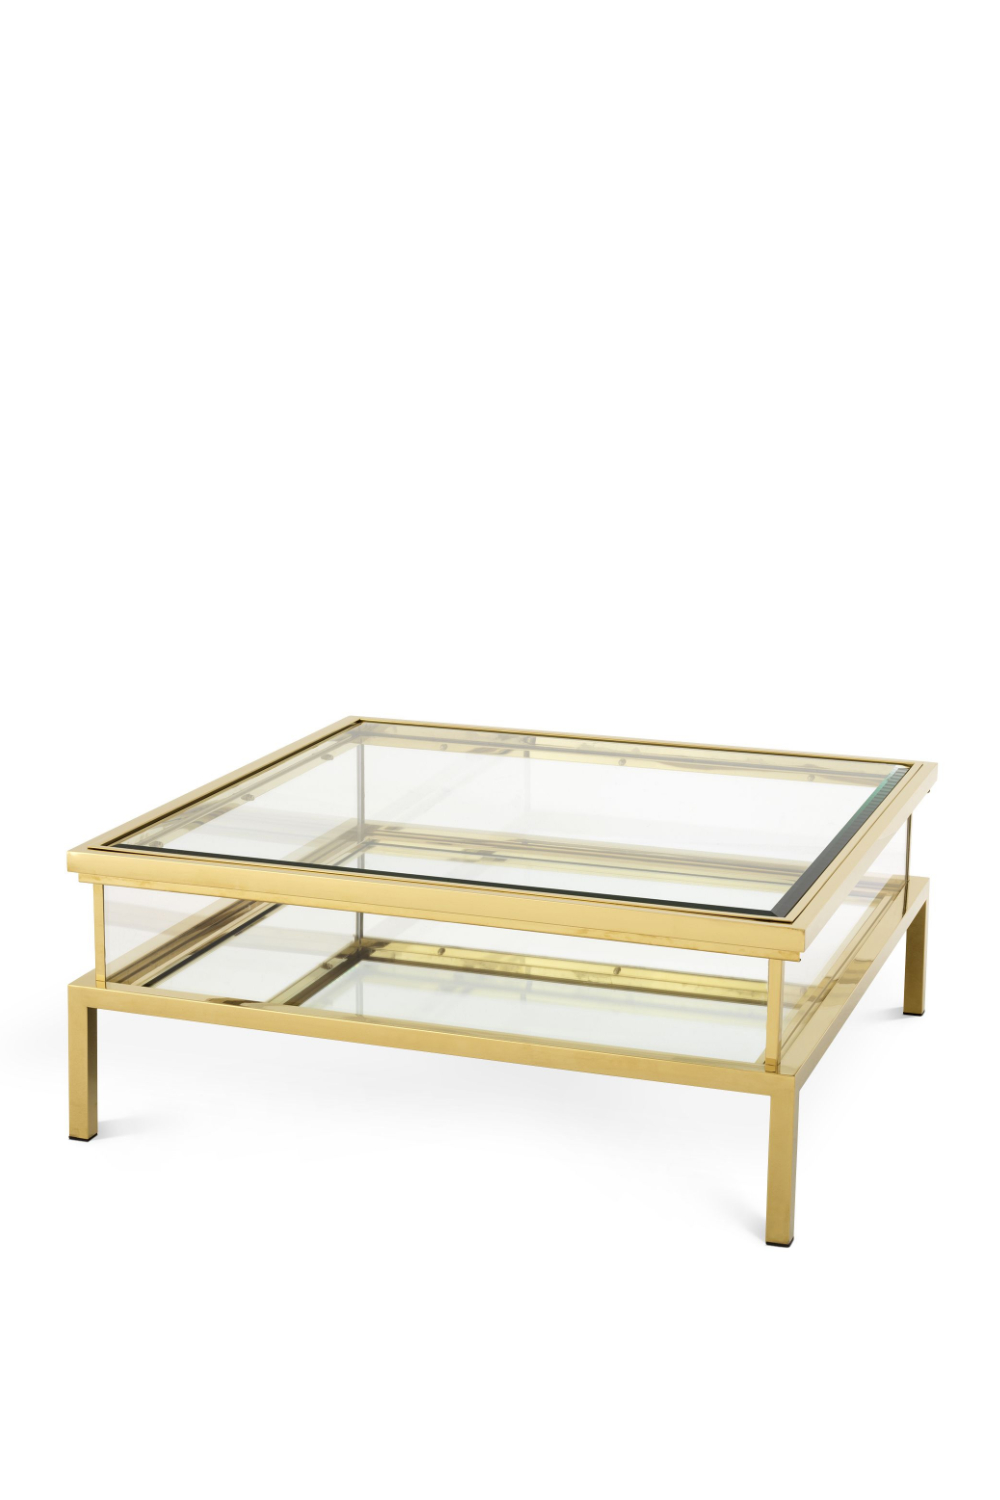 Image of Gold Sliding Top Coffee Table | Eichholtz Harvey